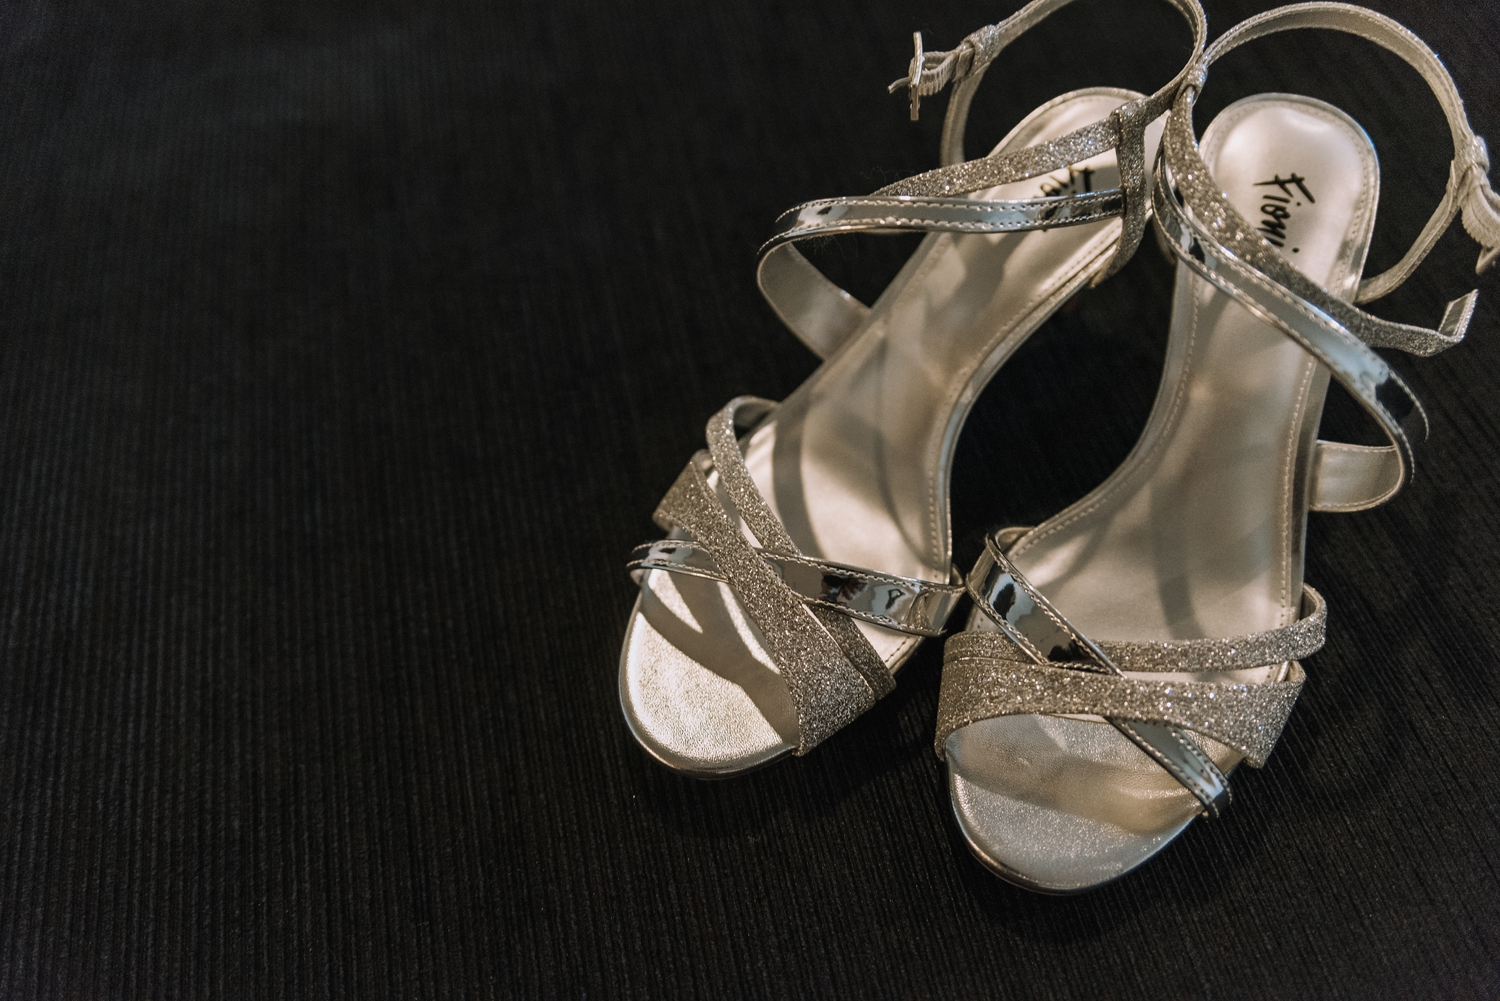 Silver Bridal Shoes - Classic Indianapolis Wedding - Canal 337 Wedding - The Overwhelmed Bride Wedding Blog